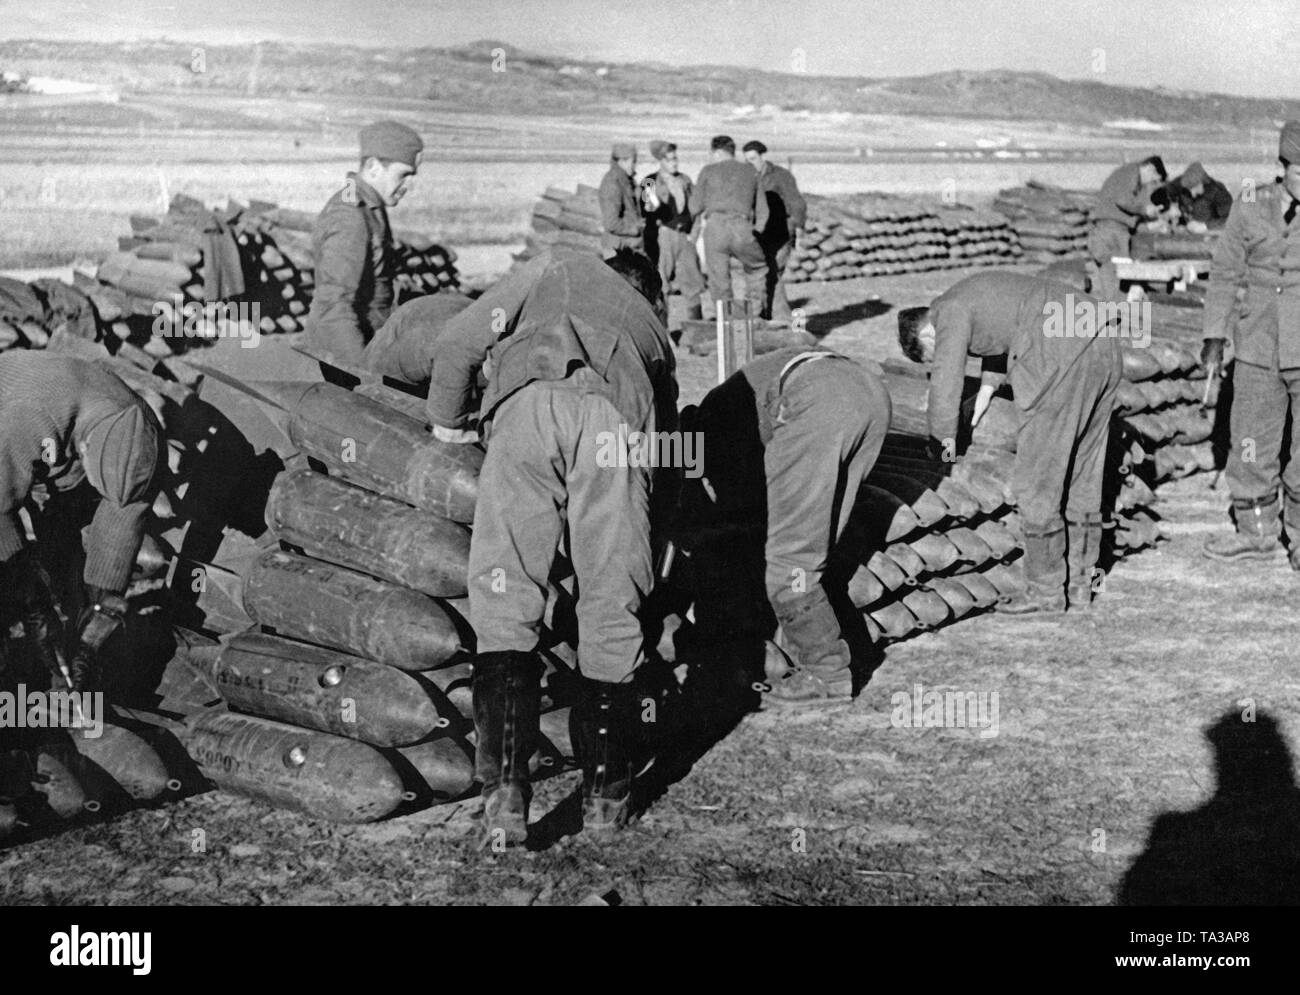 Photo of soldiers of the Condor Legion on an airfield in Spain, who are preparing the bombs. There are further bomb stacks in the background. - Stock Image